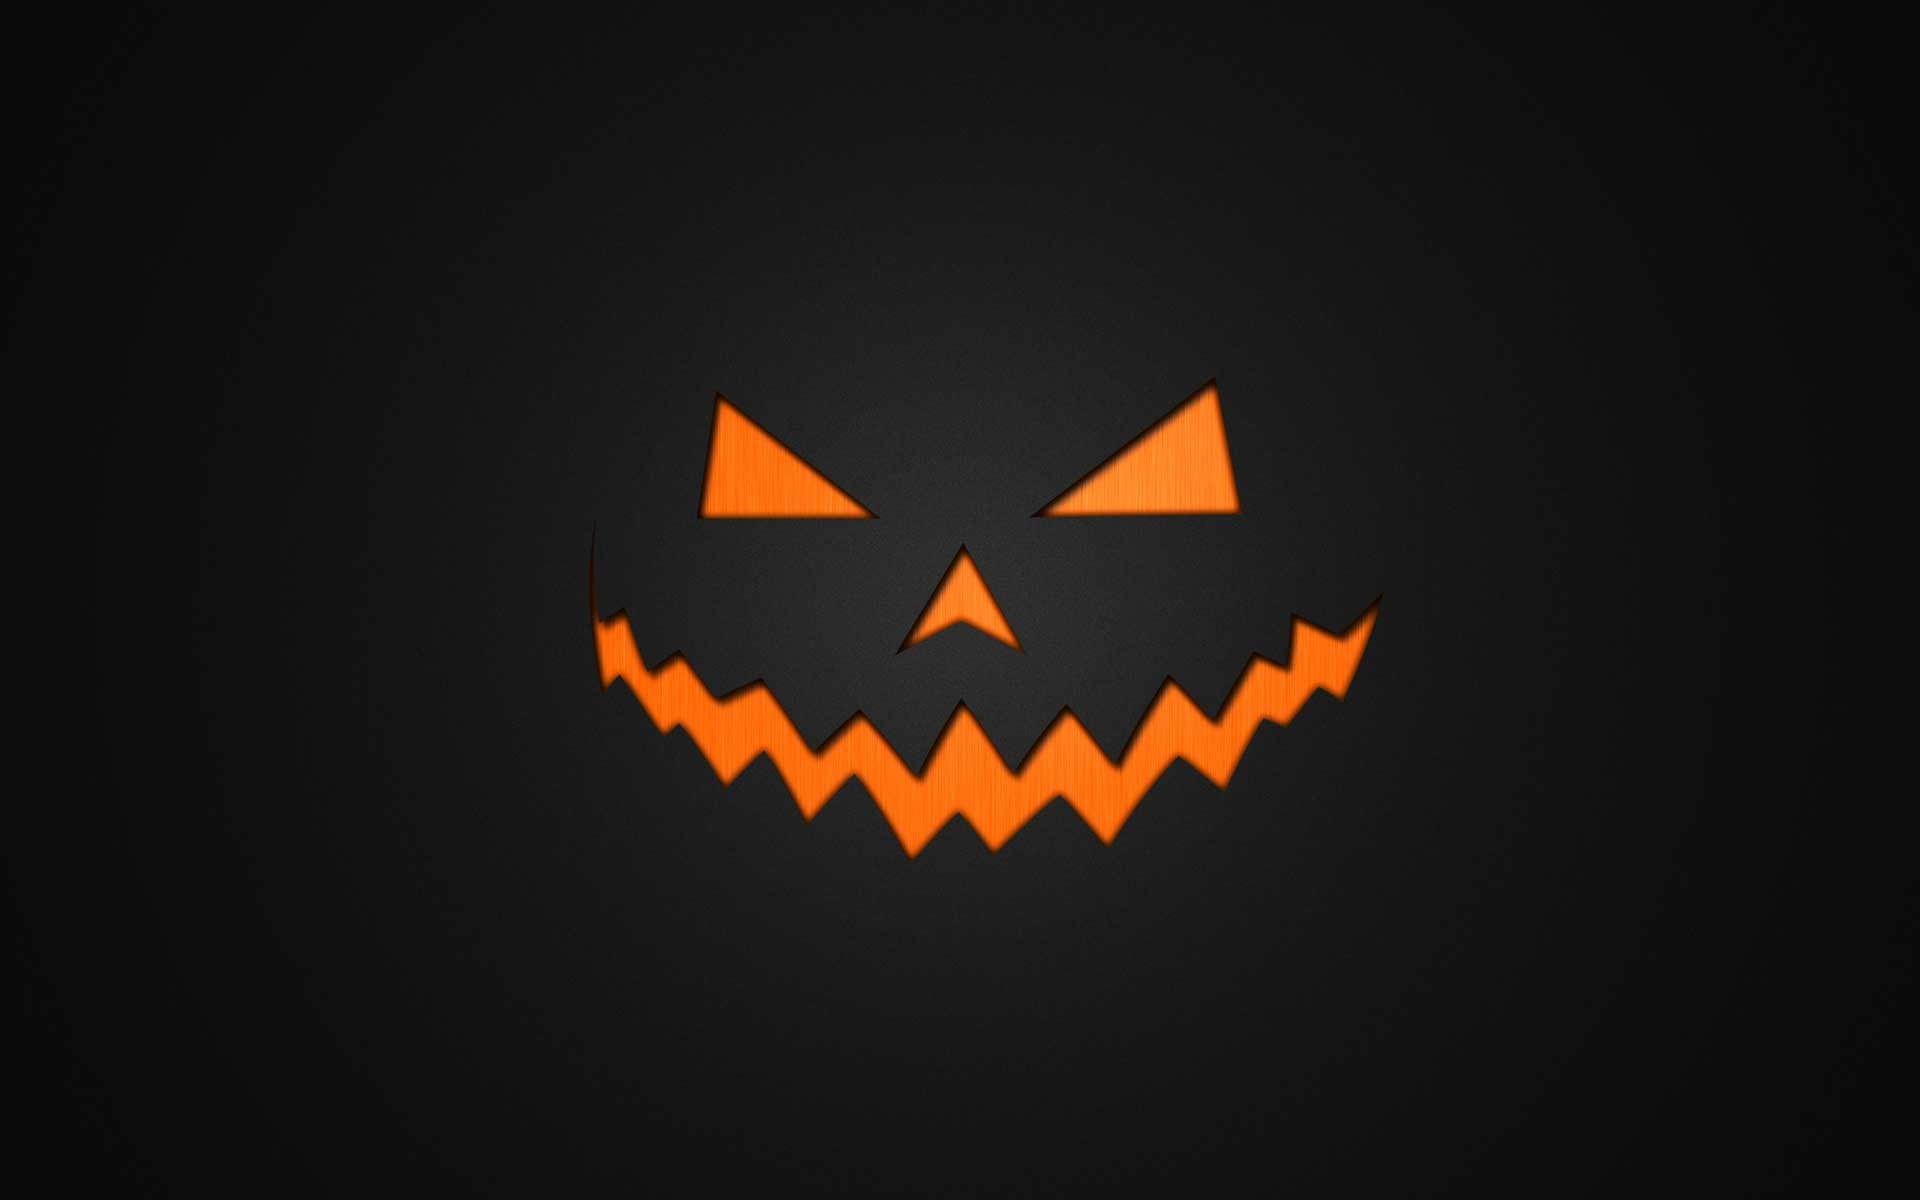 1920x1200 Creepy Halloween Windows 8 Theme and Wallpapers | All for Windows 10 .